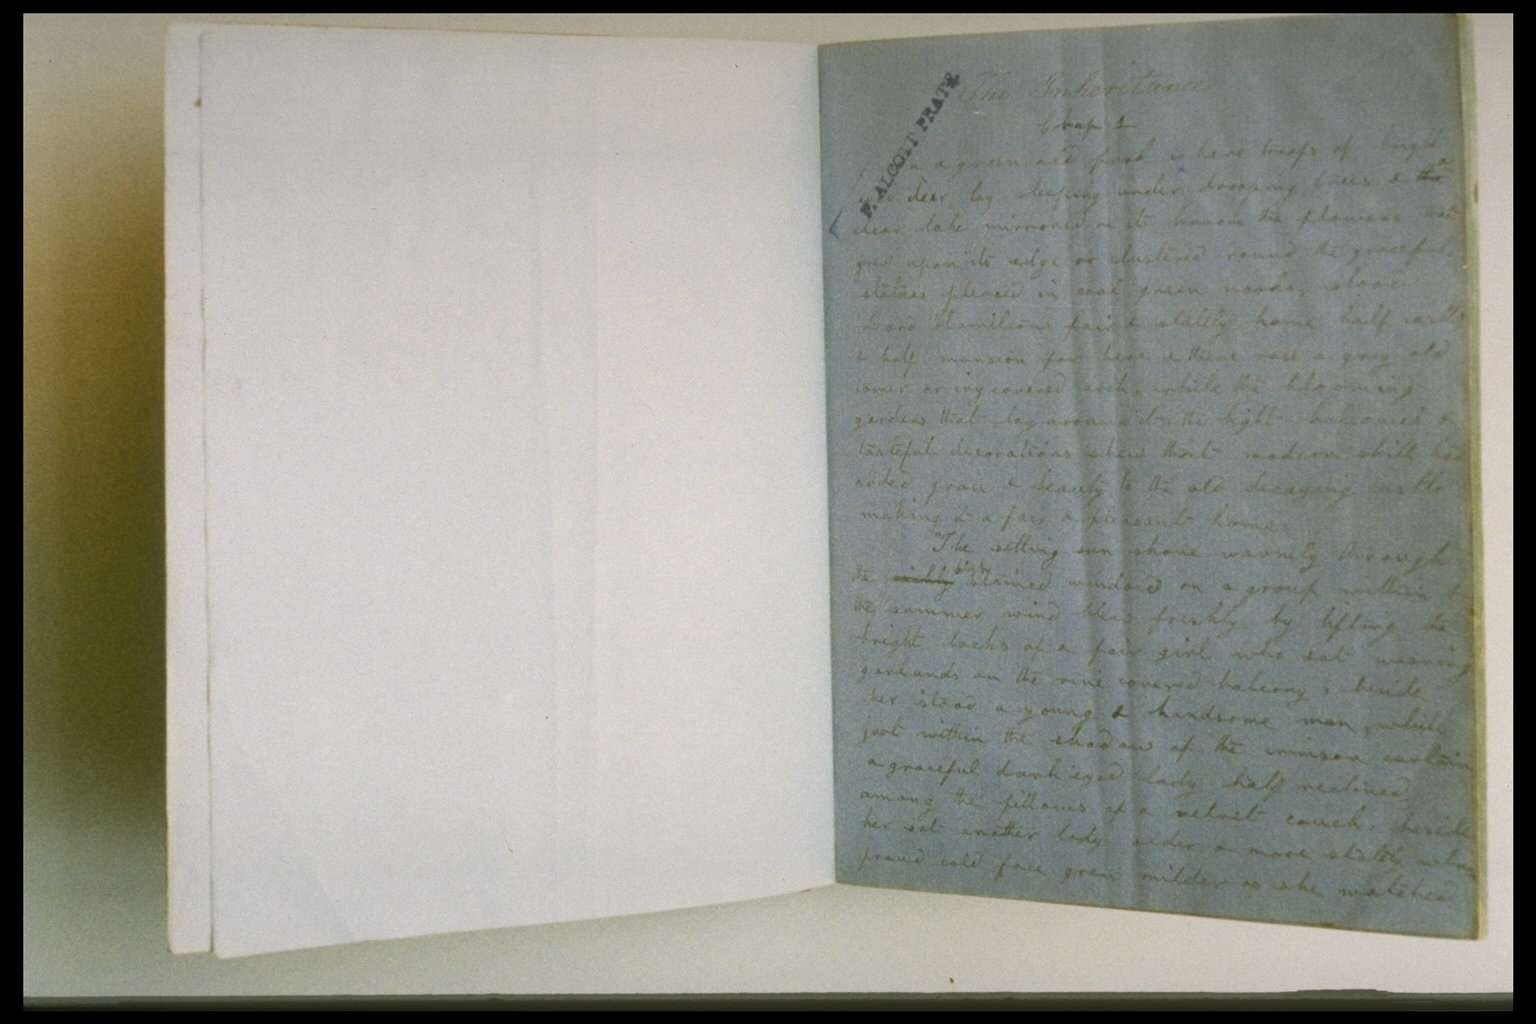 DISCOVERY OF A LOUISA MAY ALCOTT MANUSCRIPT